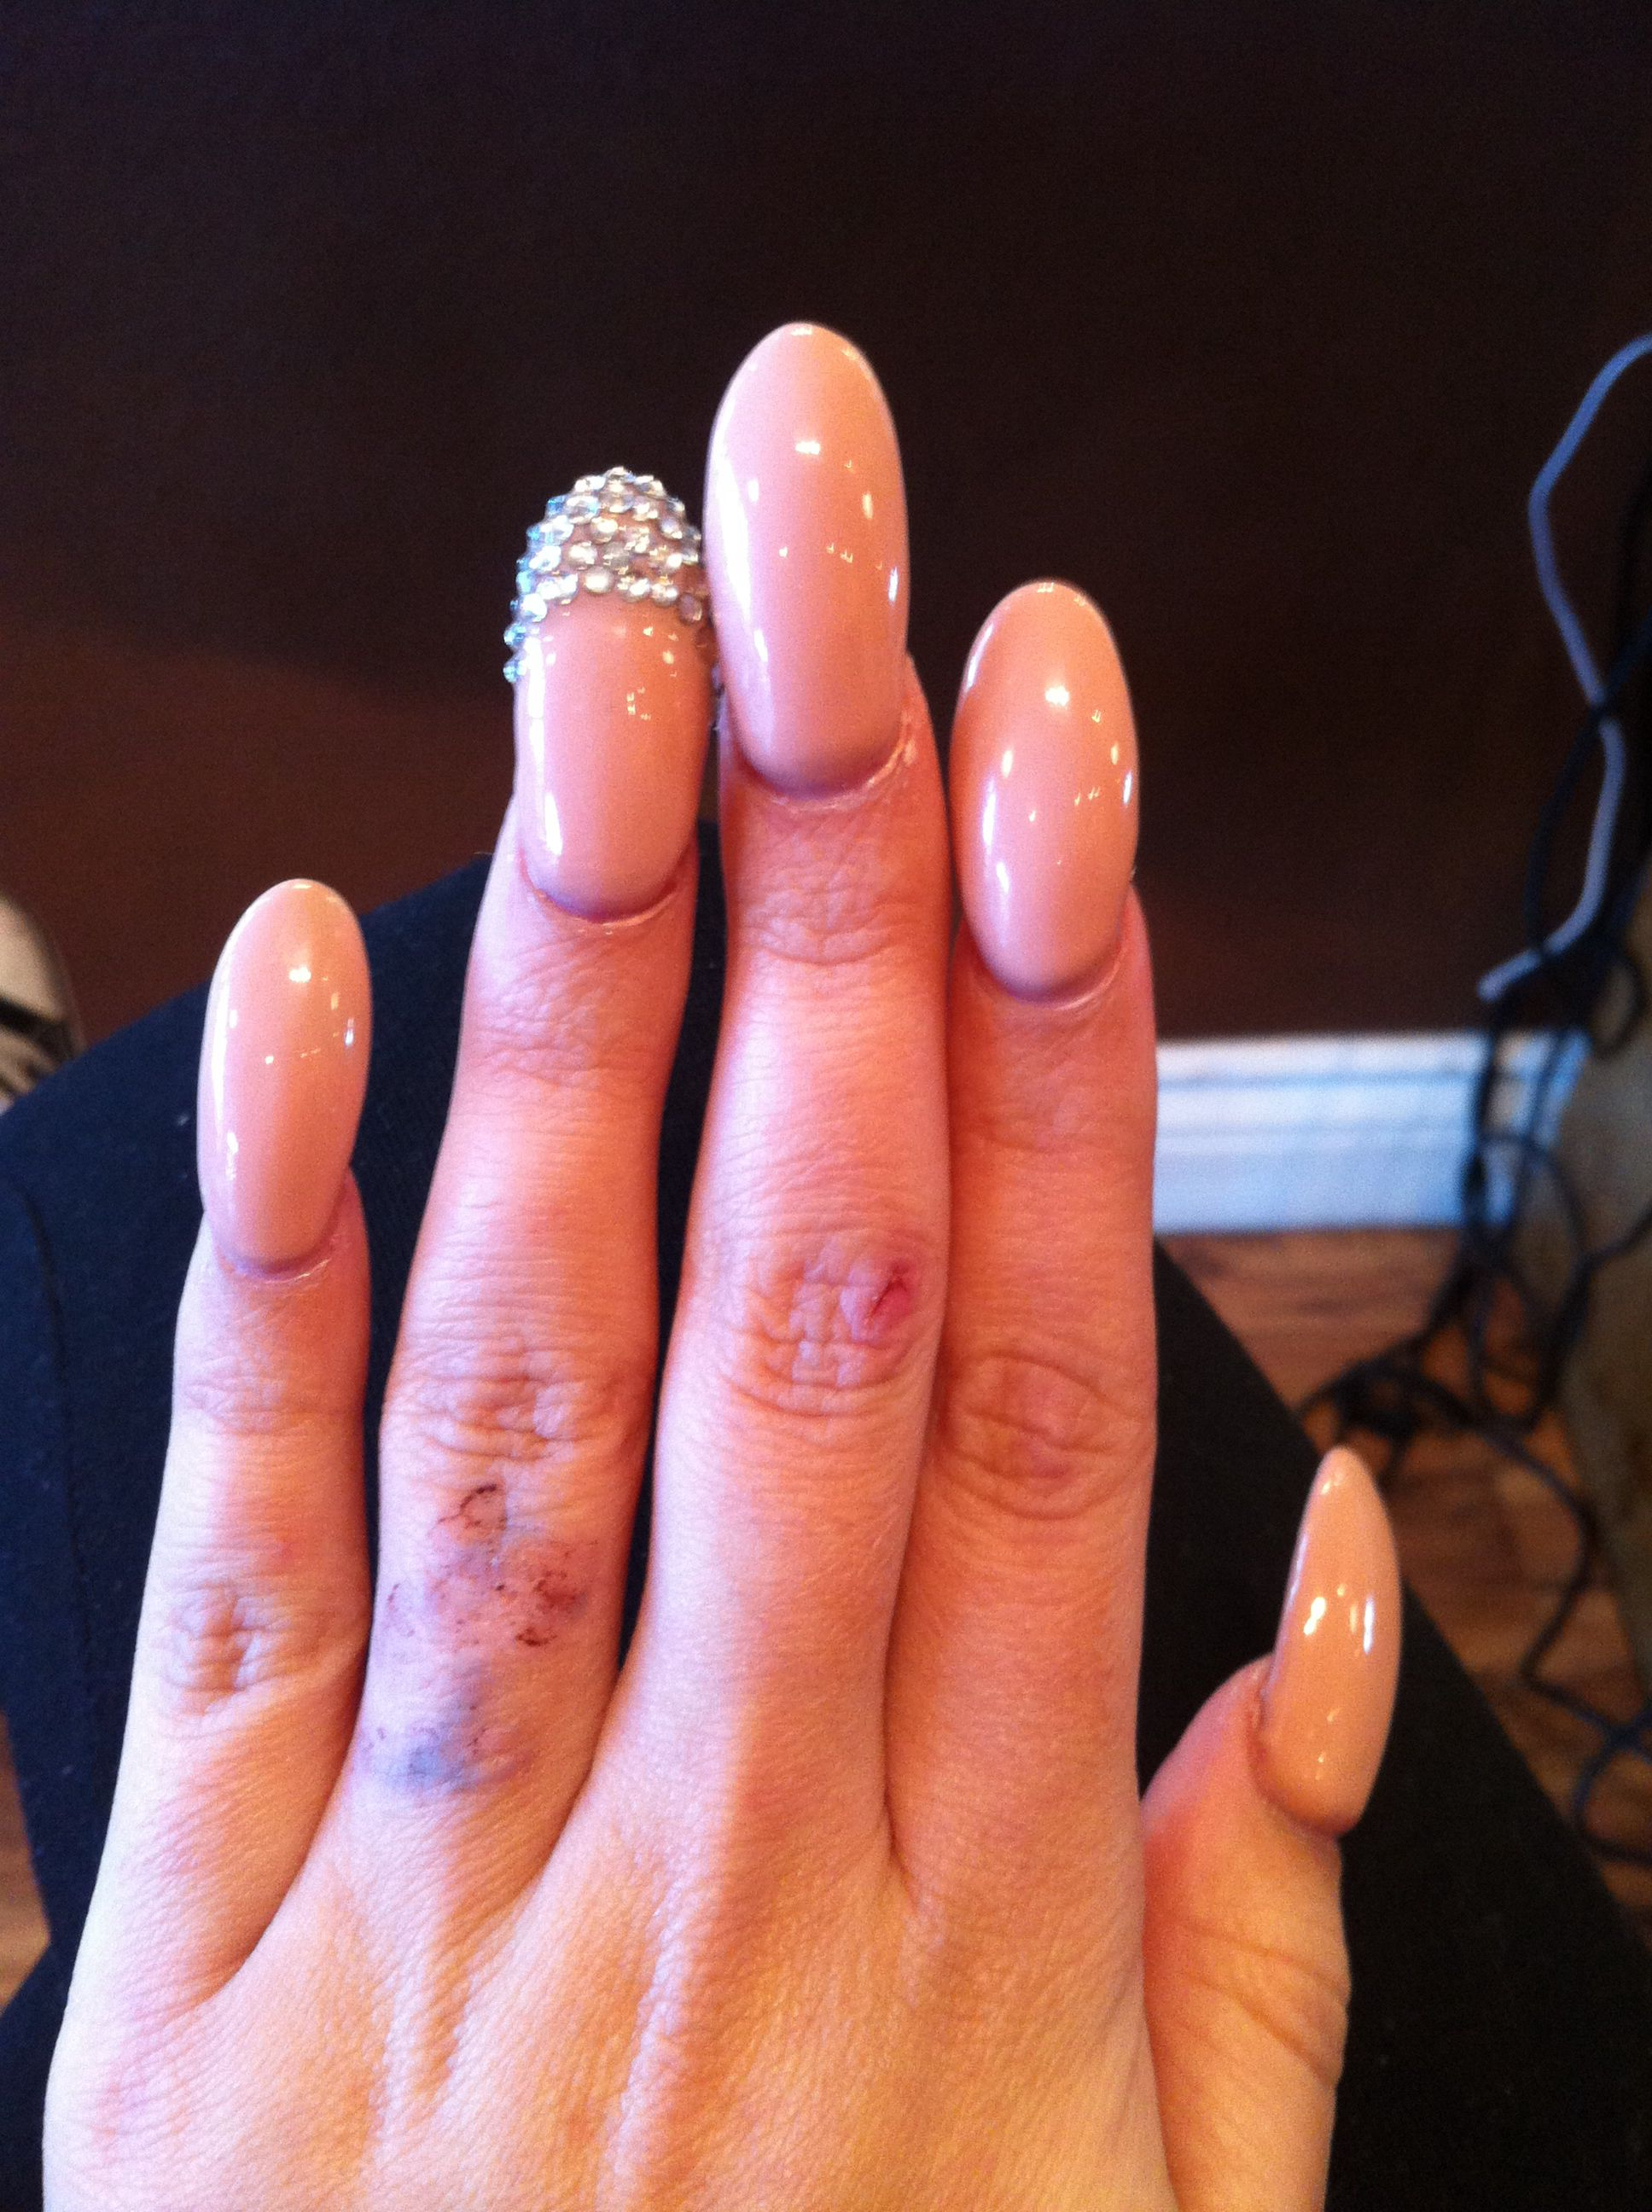 Oval acrylic nail #classic #nude #rhinestones | Nails | Pinterest